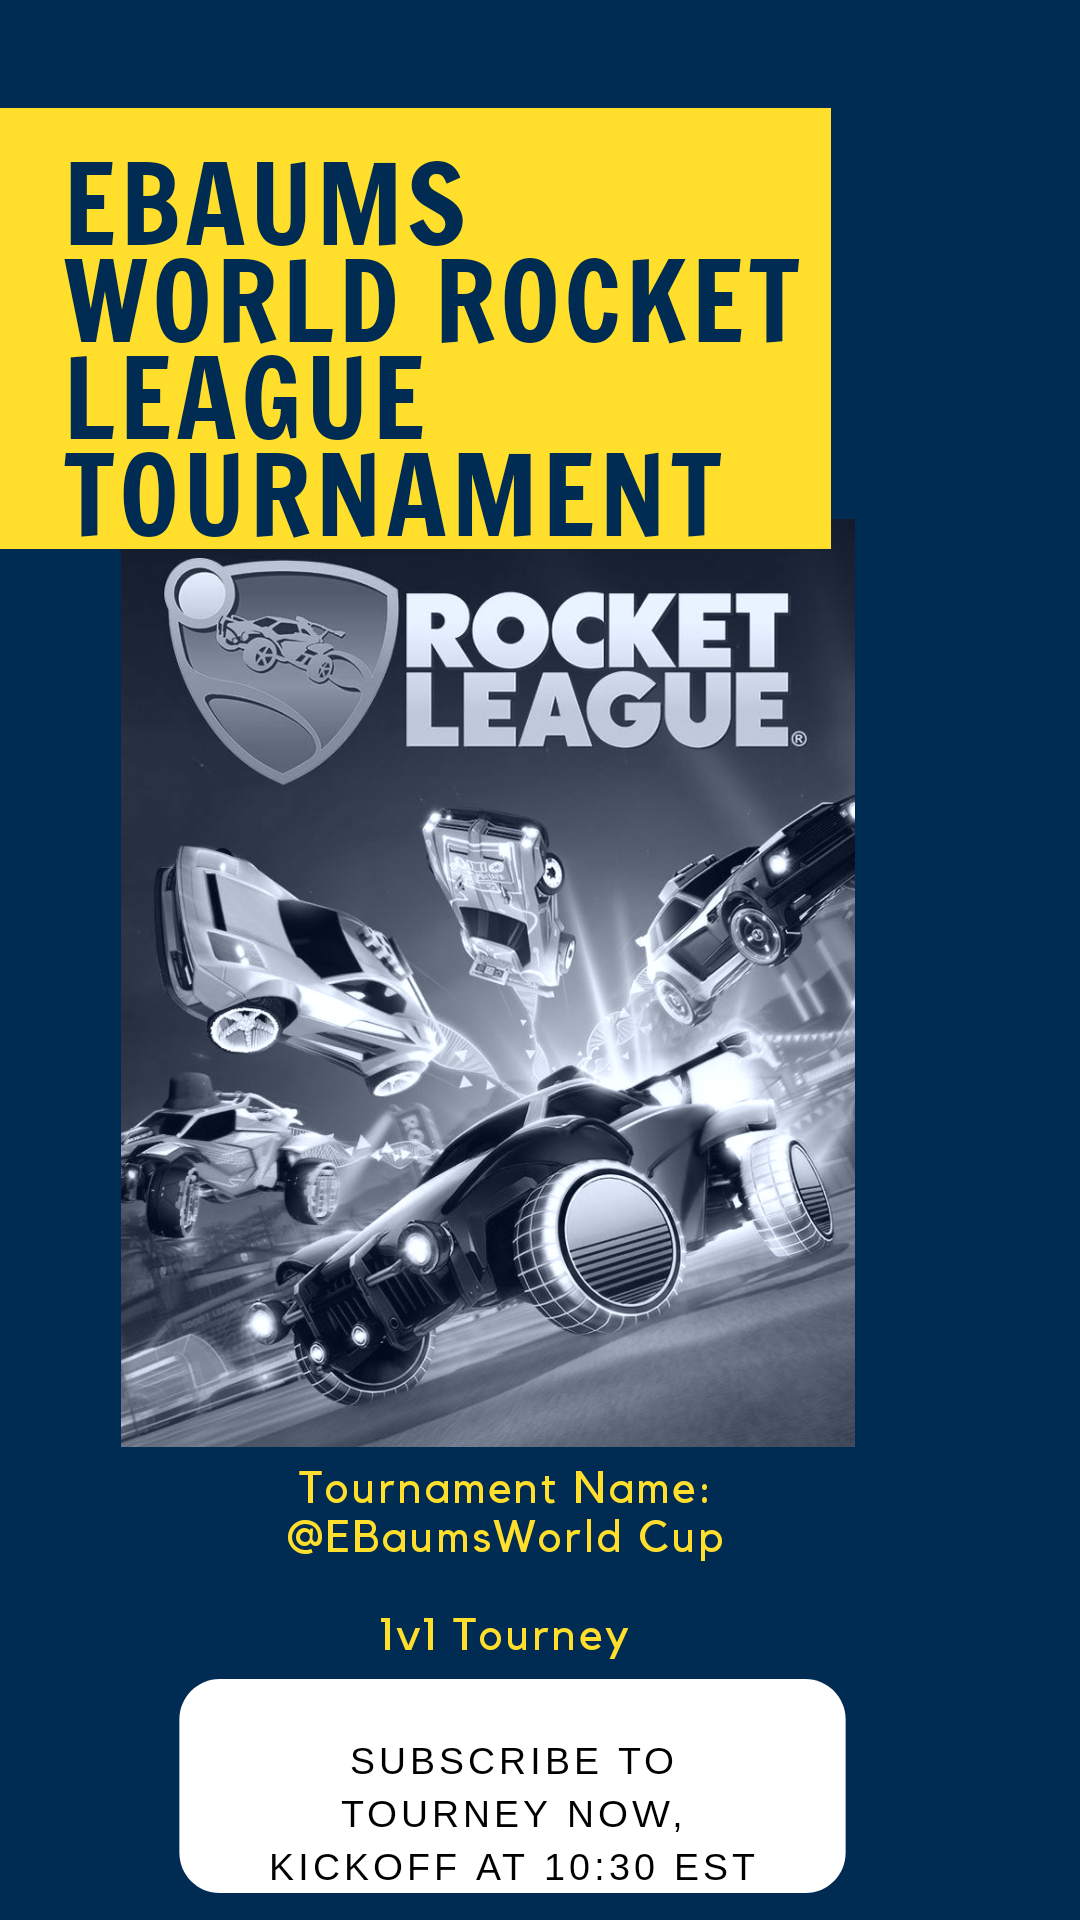 """At 10:30pm ET, we will have our first ever Rocket League tournament.   If you want to play we need some more people!   Details: 32 Players, 1v1, All Systems (PC, Xbox, Switch, PS4)  To join, around 10pm hop on Rocket League and go to Tournaments. Then, go to Find Tournament. Hit Show Filters and search """"@EbaumsWorld"""" and you should find it!"""